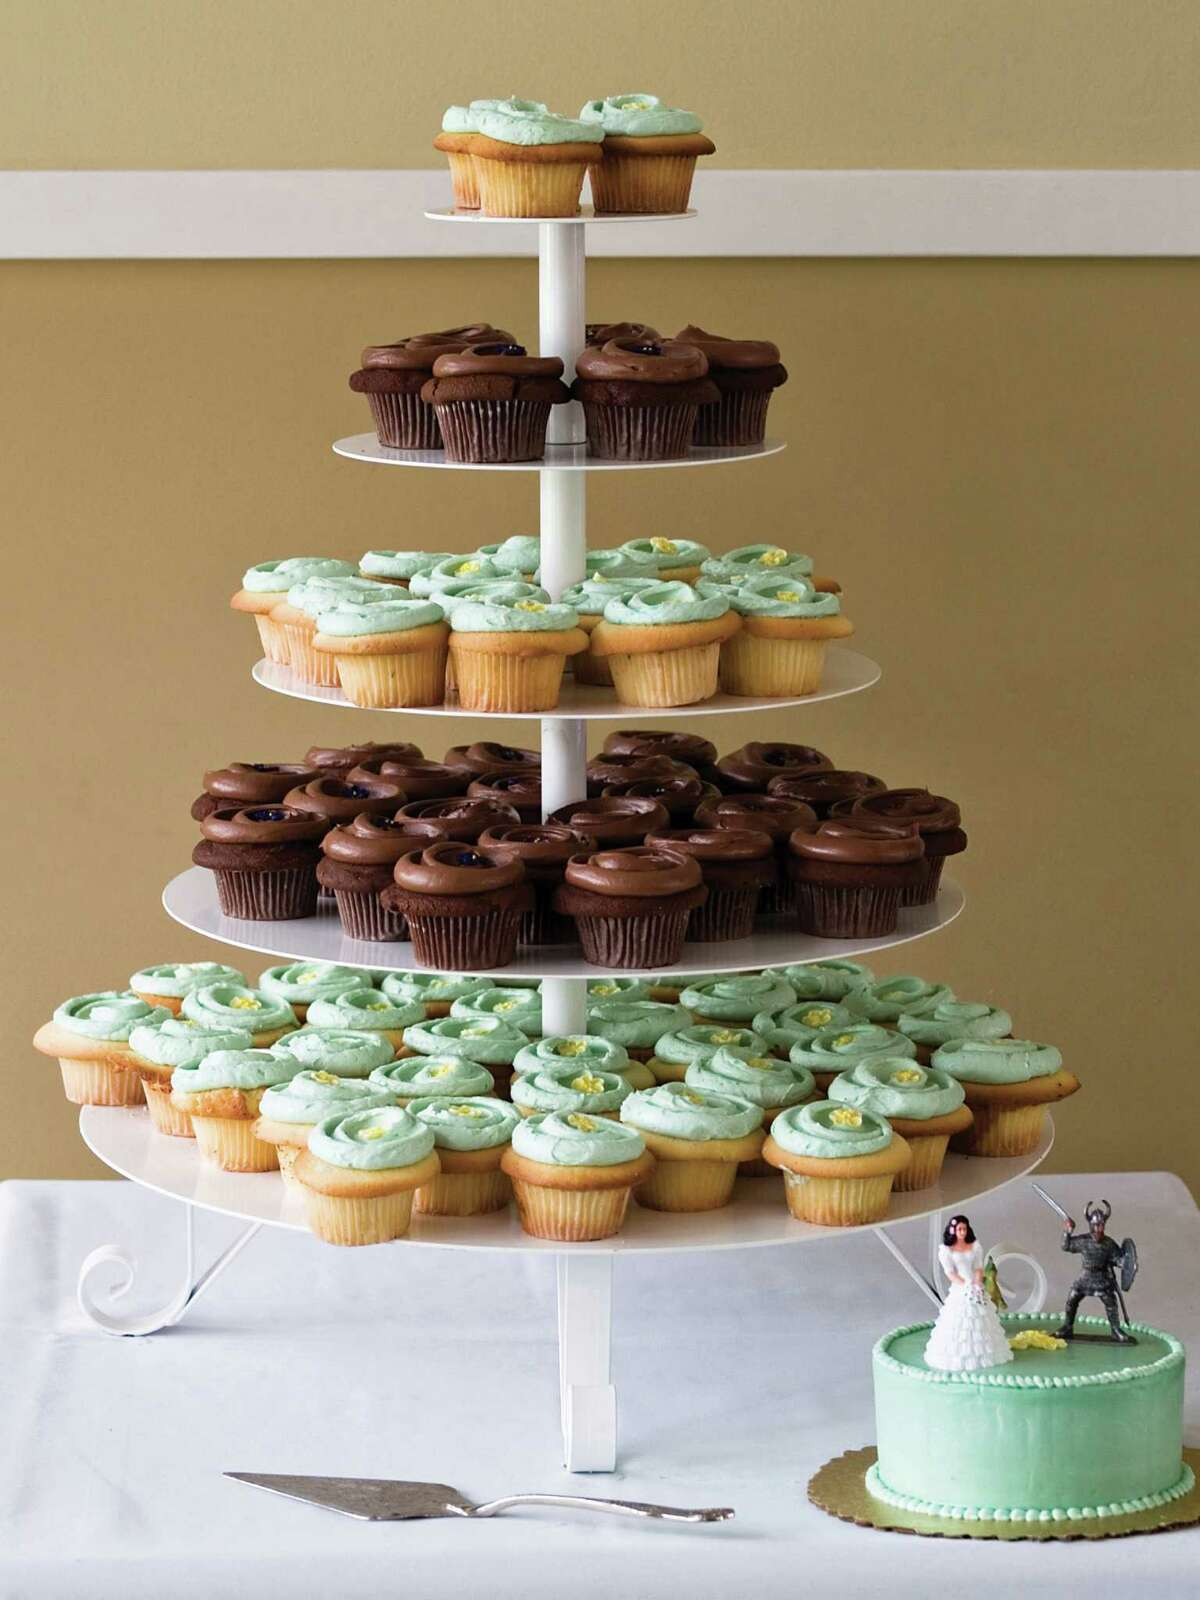 Think outside the cakebox: Cupcakes are still a clever way to serve dessert.